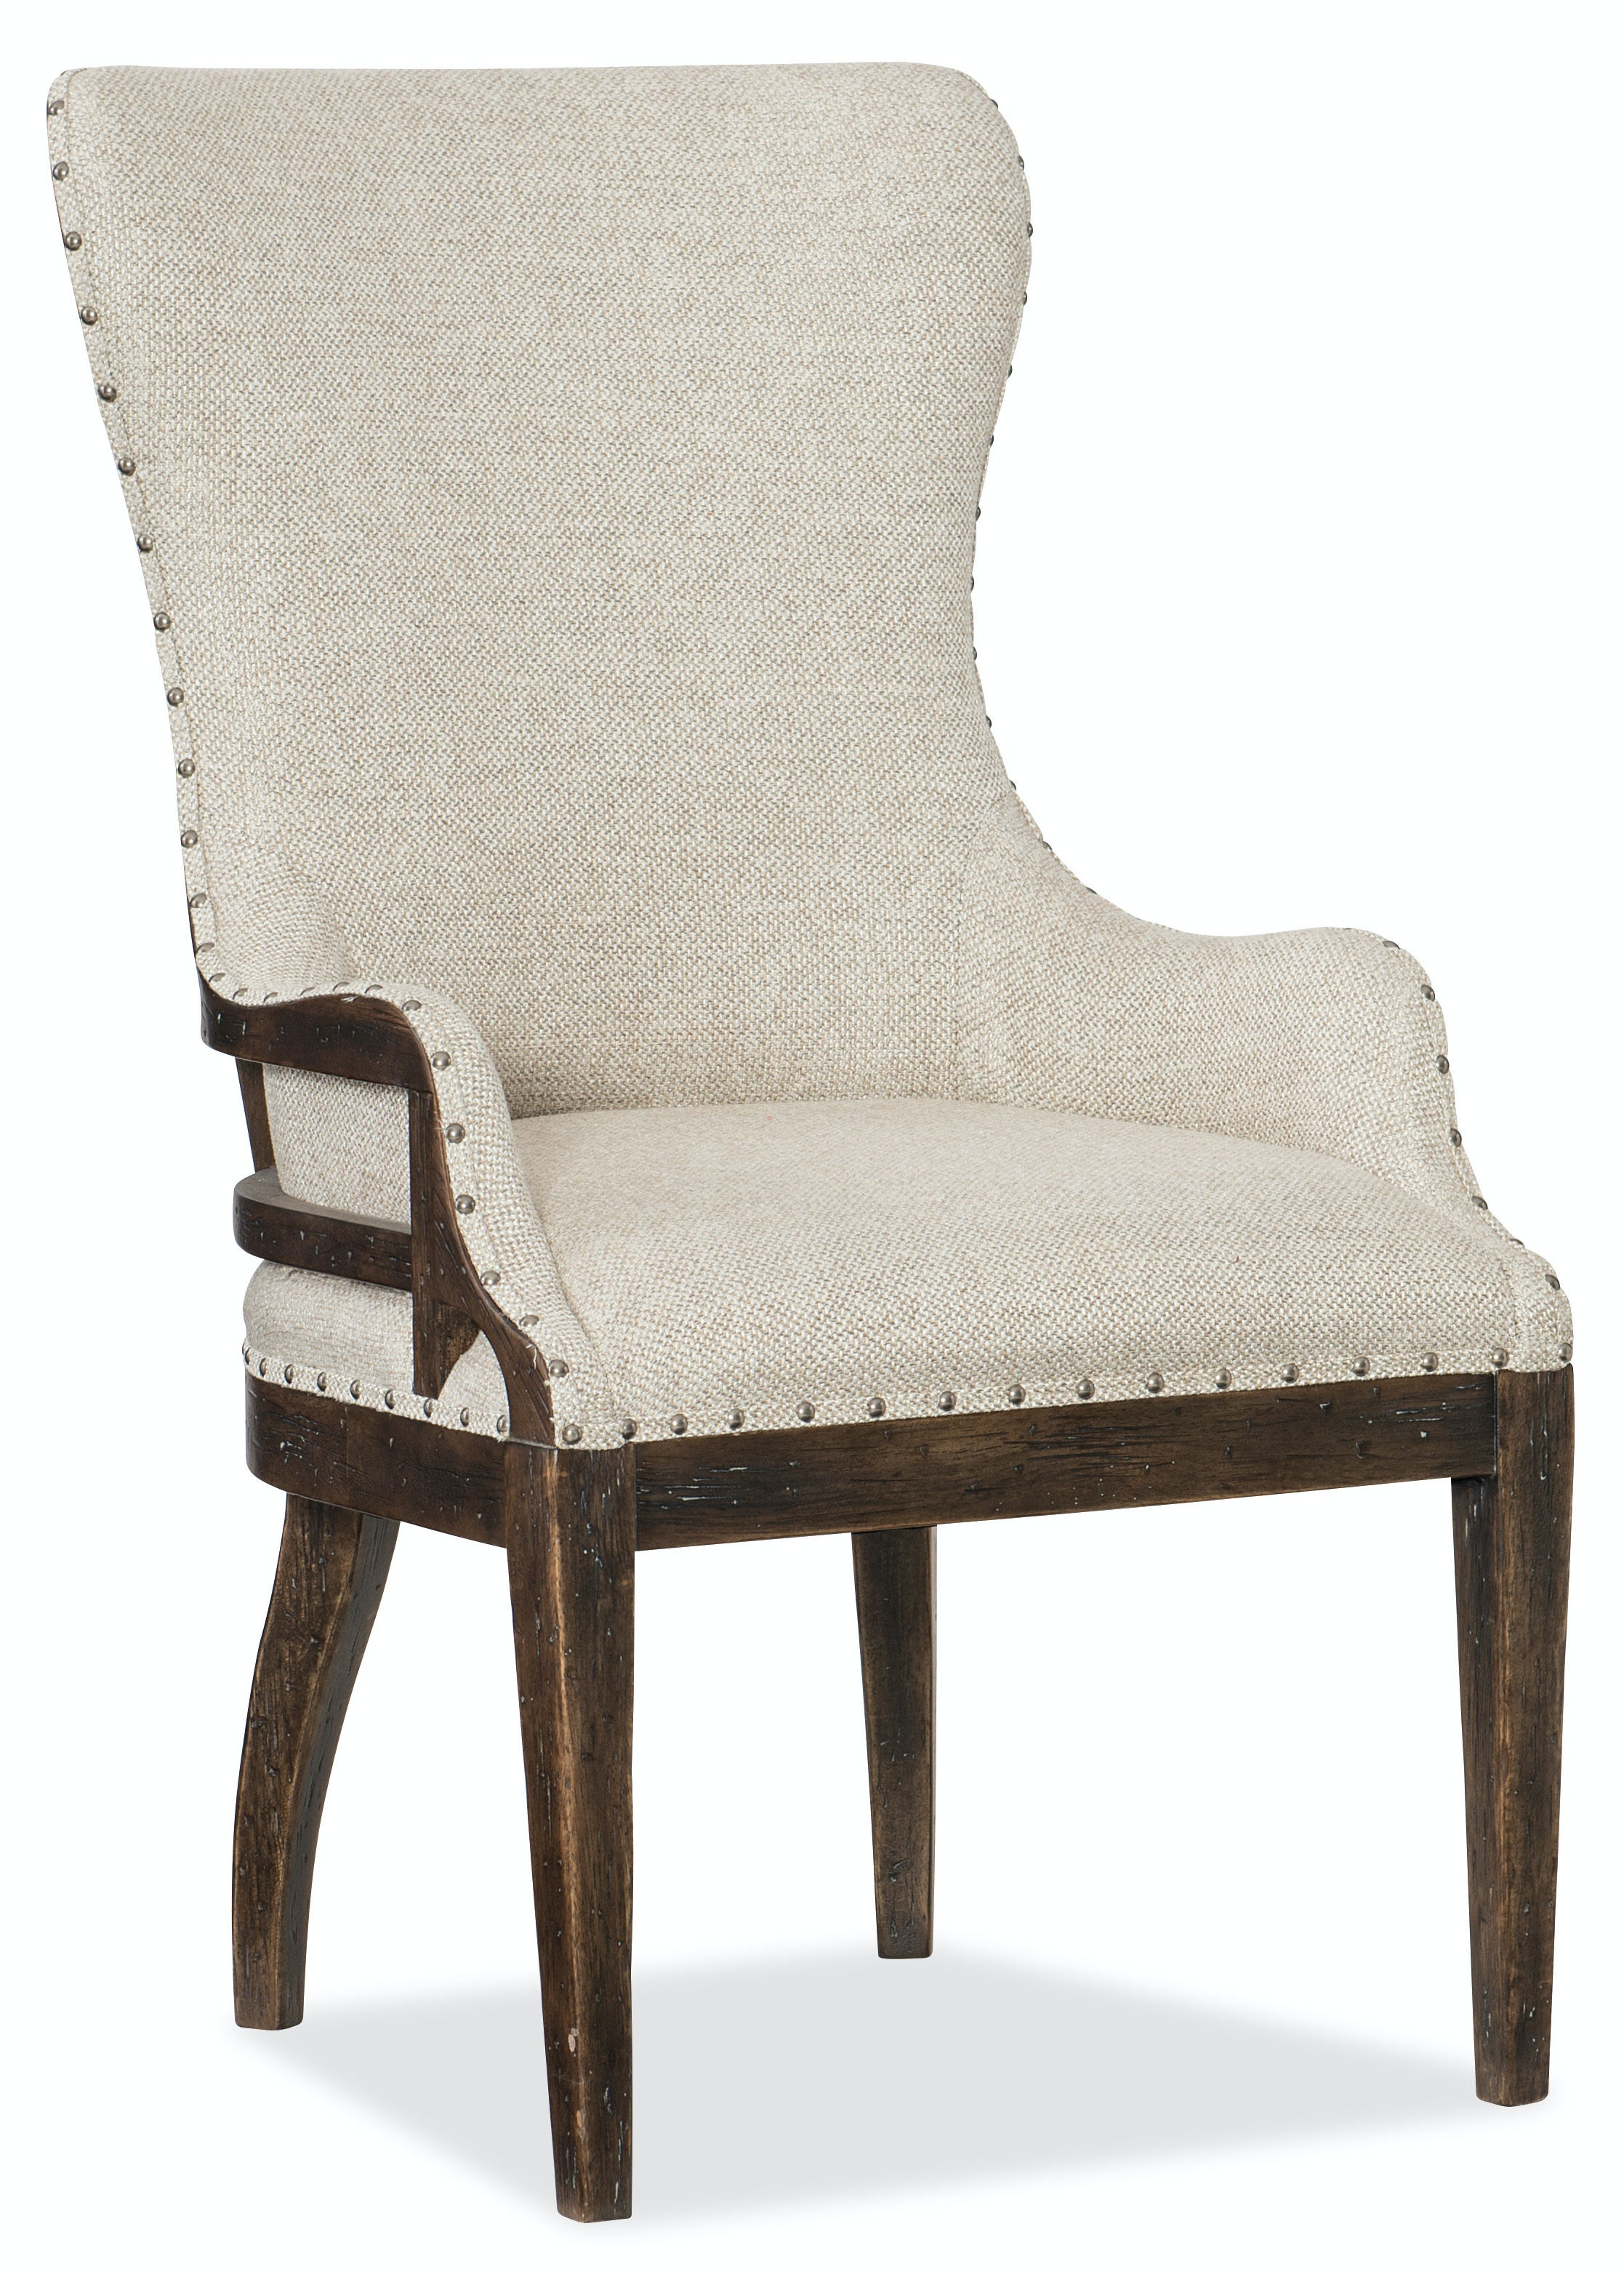 Hooker Furniture Roslyn County Deconstructed Upholstered Host Chair 1618-75500-DKW  sc 1 st  Hooker Furniture & Hooker Furniture Dining Room Roslyn County Deconstructed ... islam-shia.org